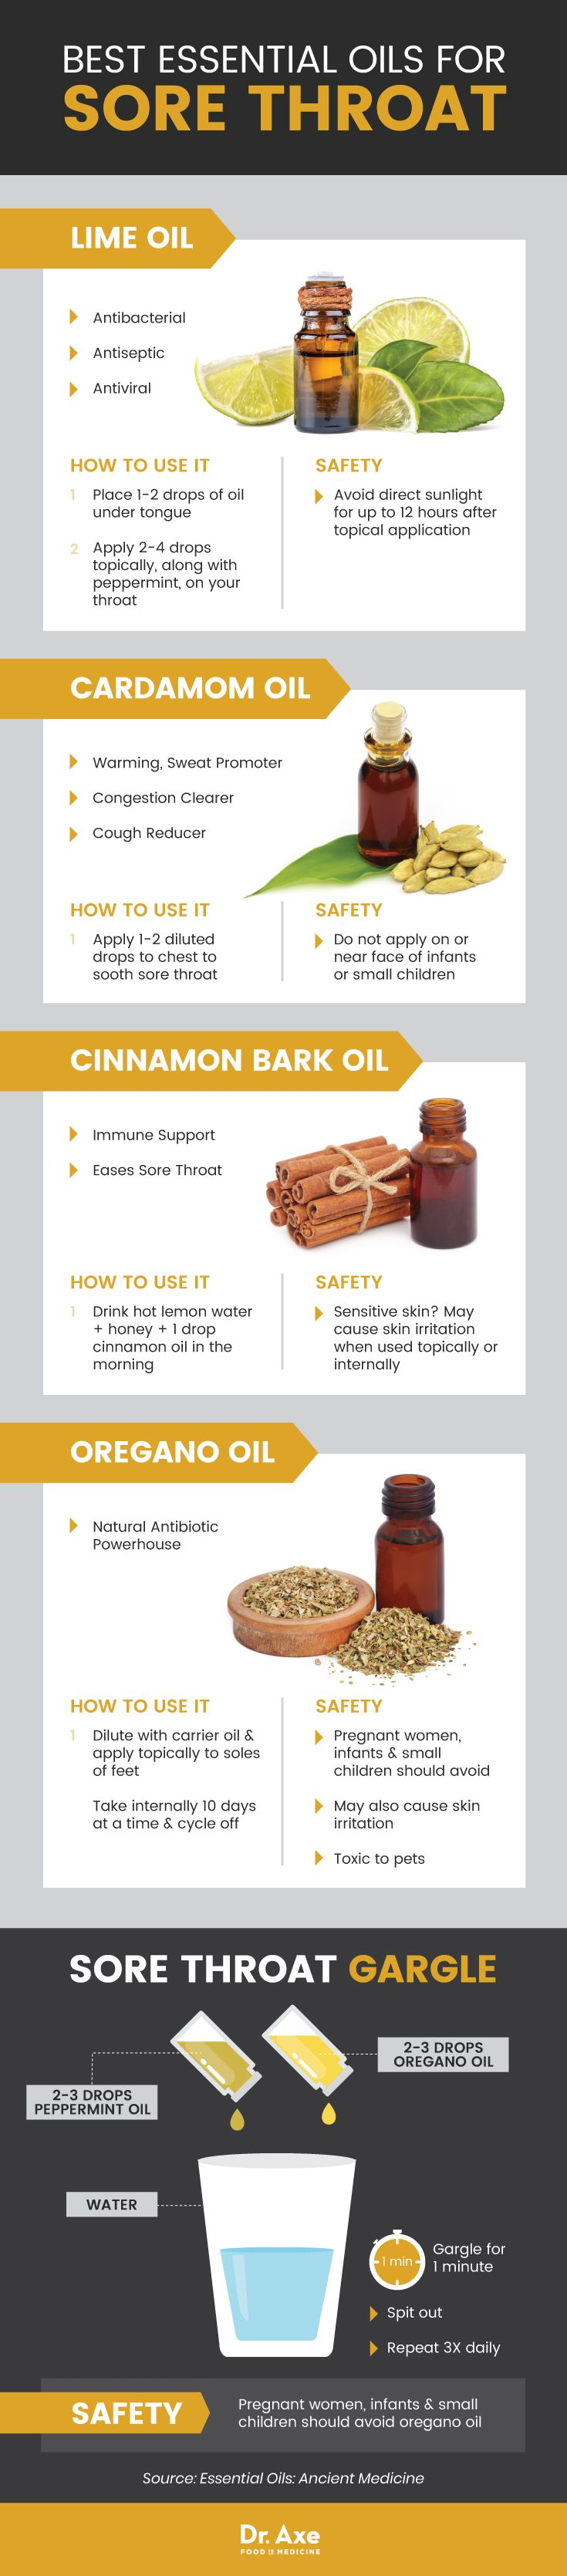 Best essential oils for cold - Dr. Axe